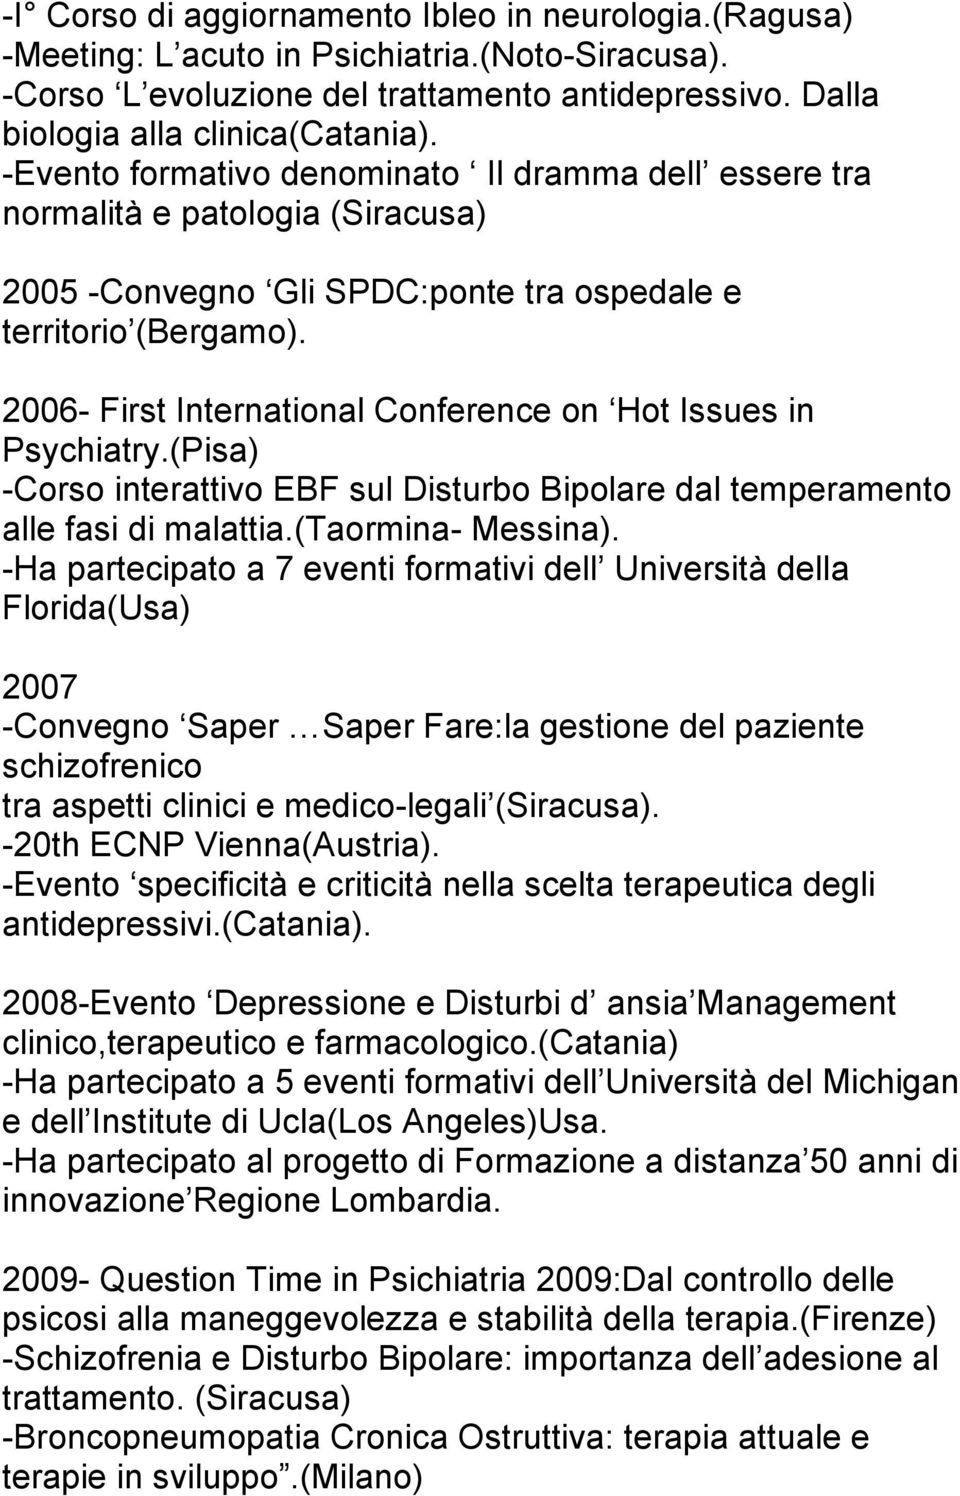 2006- First International Conference on Hot Issues in Psychiatry.(Pisa) -Corso interattivo EBF sul Disturbo Bipolare dal temperamento alle fasi di malattia.(taormina- Messina).